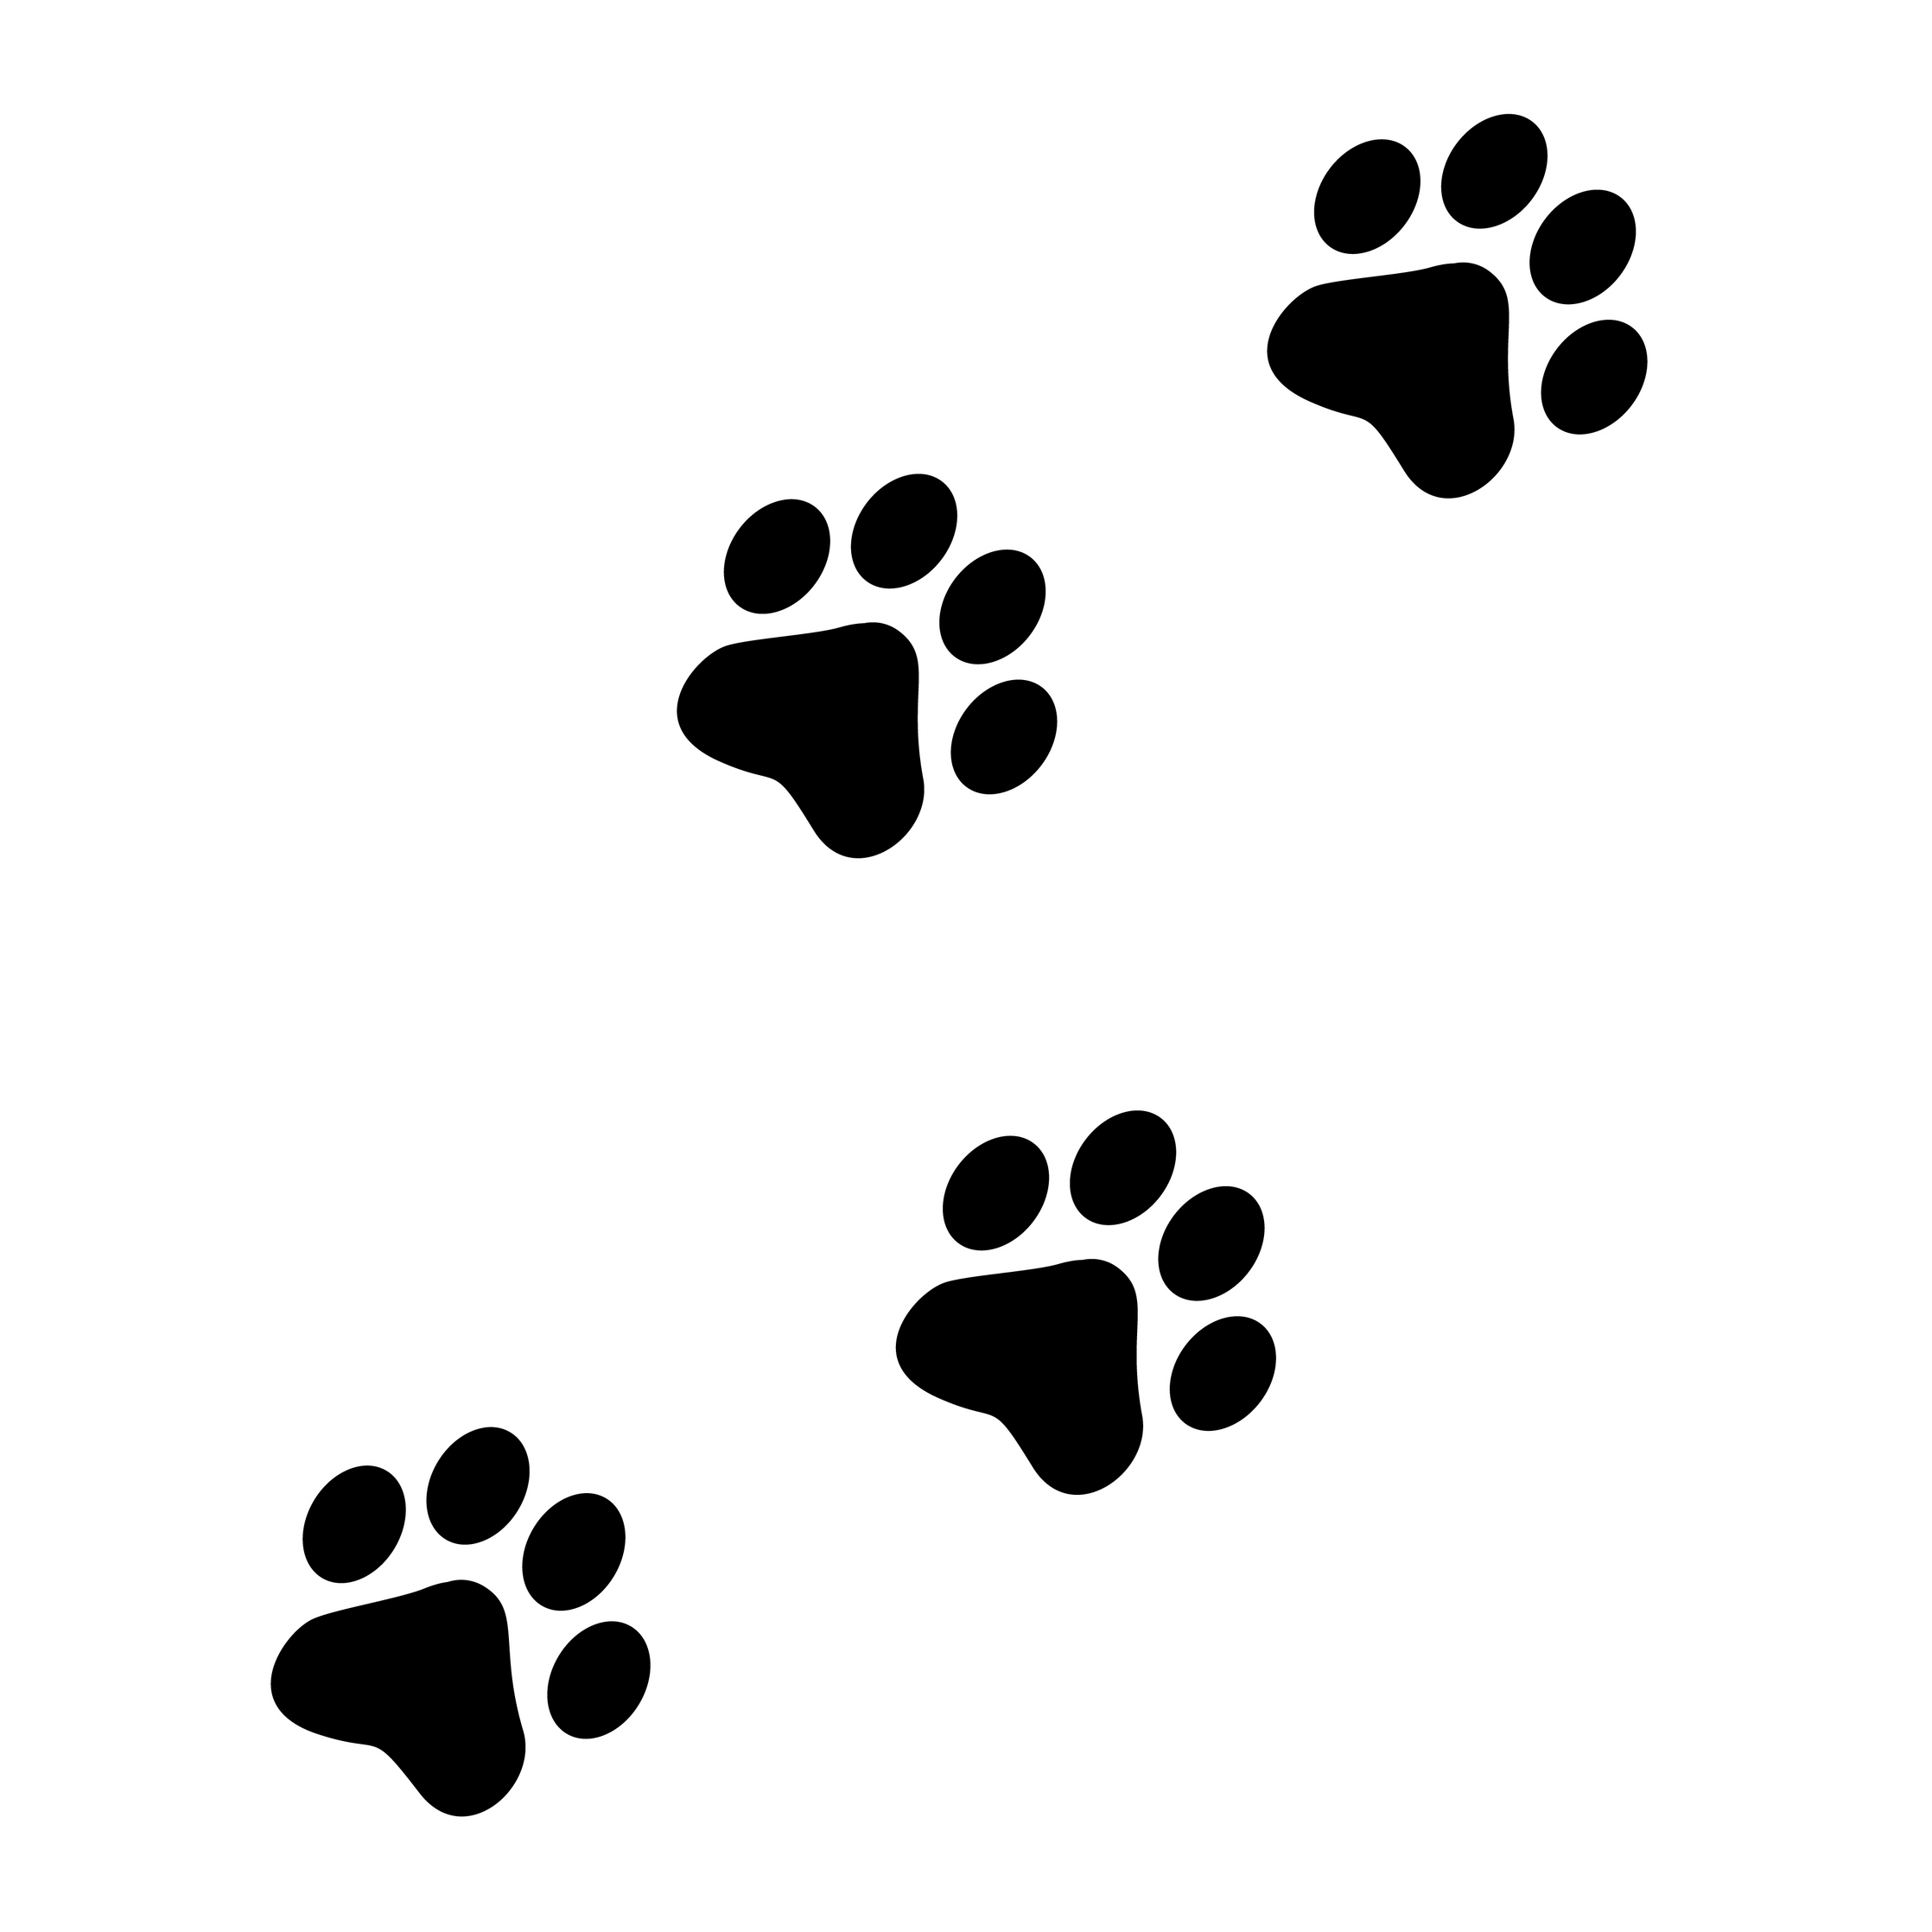 Huella clipart svg freeuse library Searching images : huella - Clip Art Library svg freeuse library